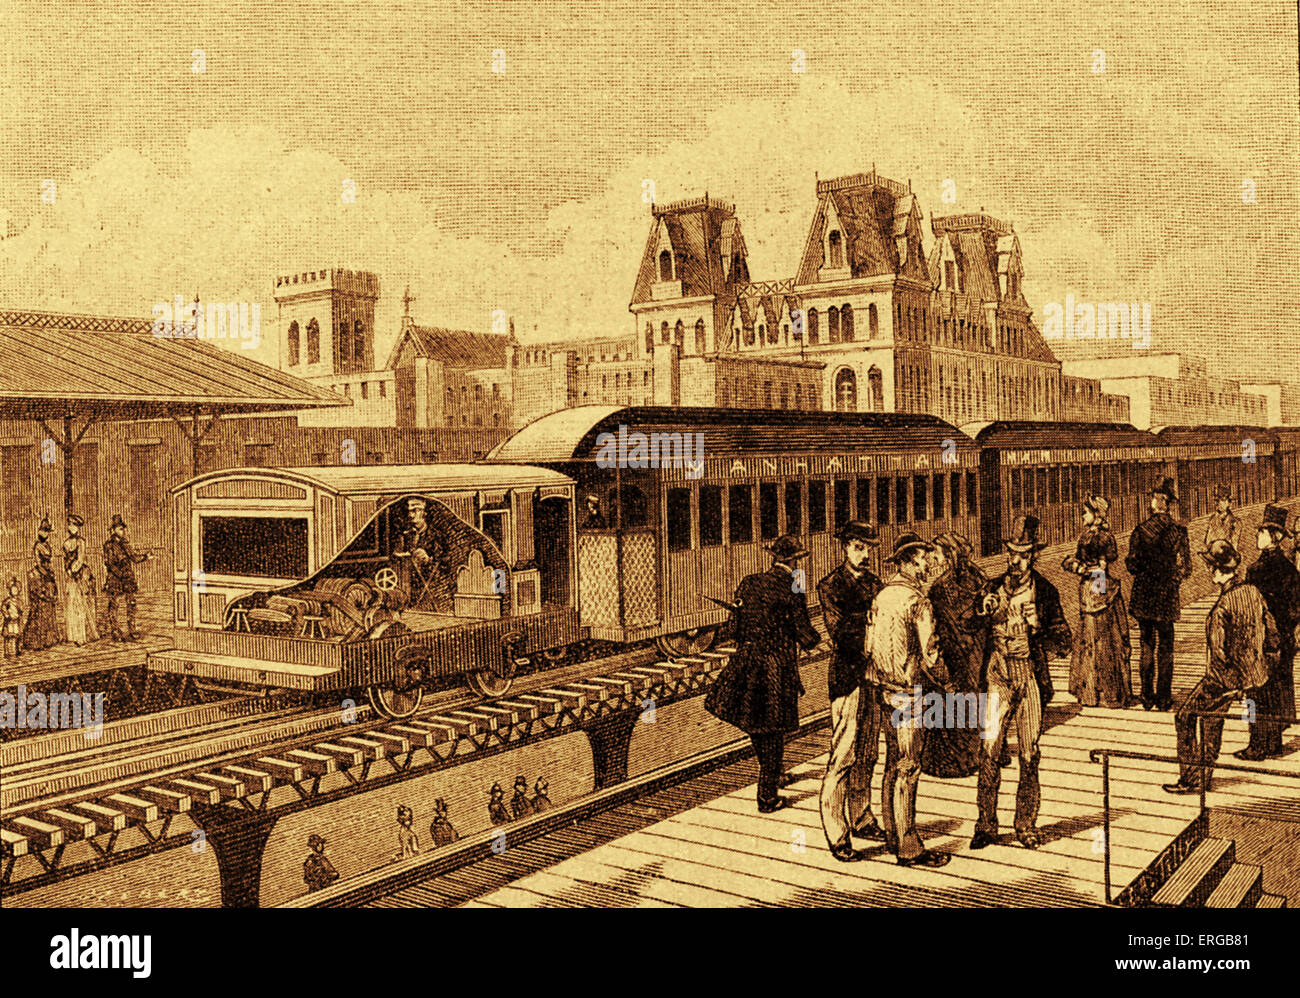 First electric train of the New York subway 19th century. 1885. Stock Photo